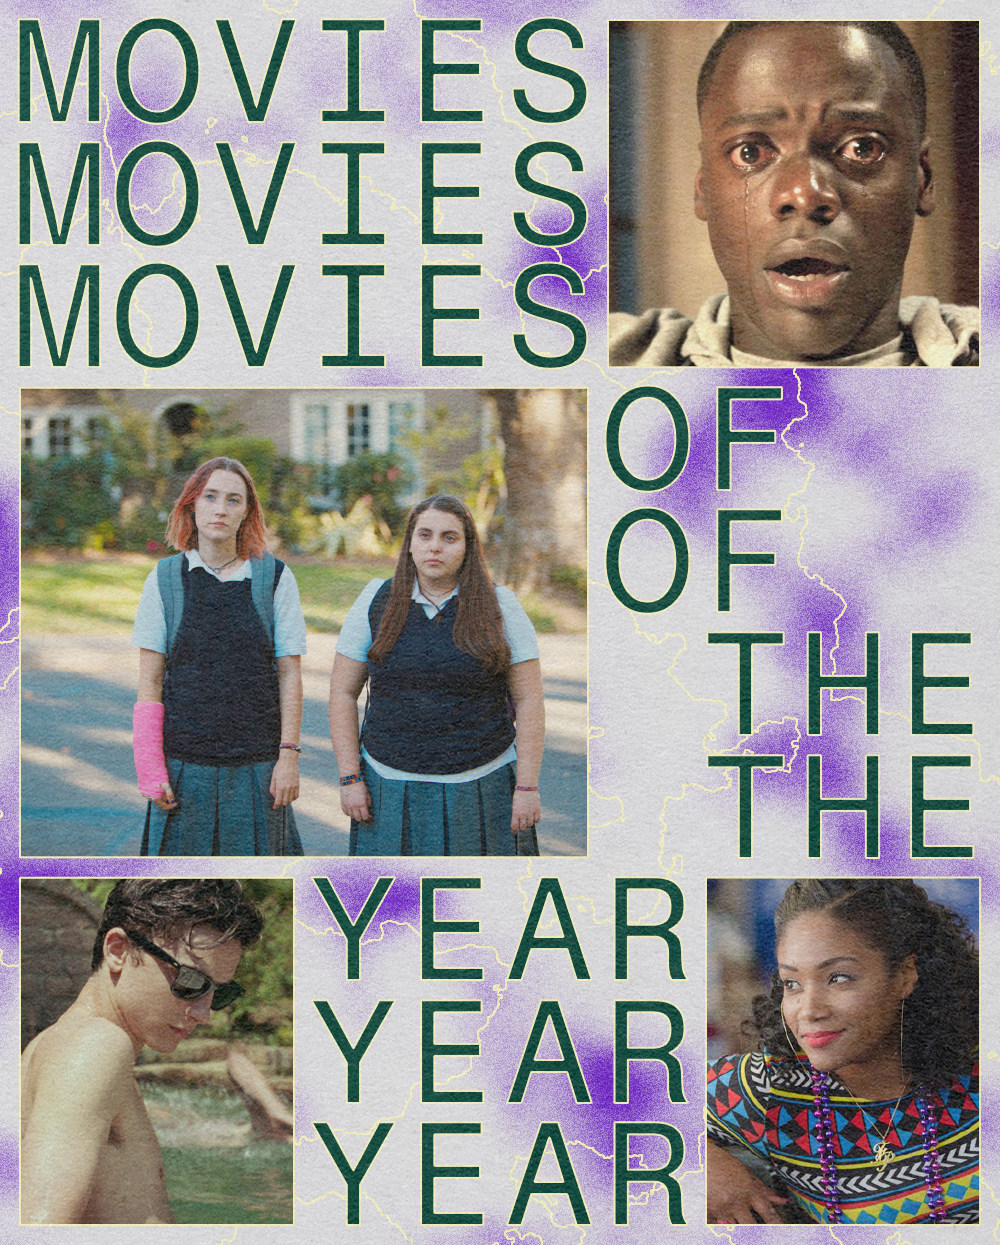 The only good thing about 2017 was the movies